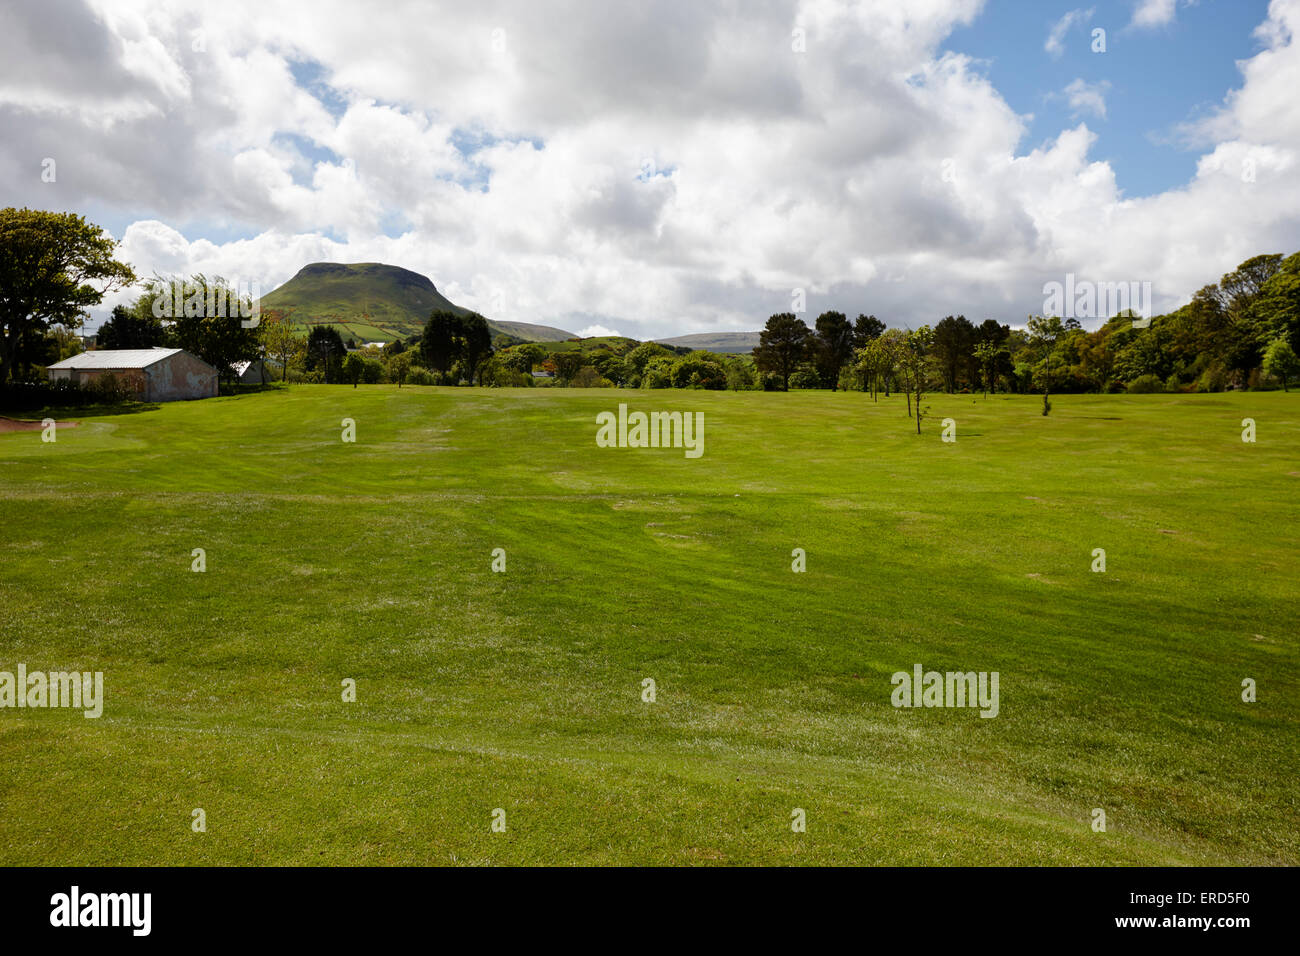 fairway at Cushendall golf course County Antrim Northern Ireland UK - Stock Image